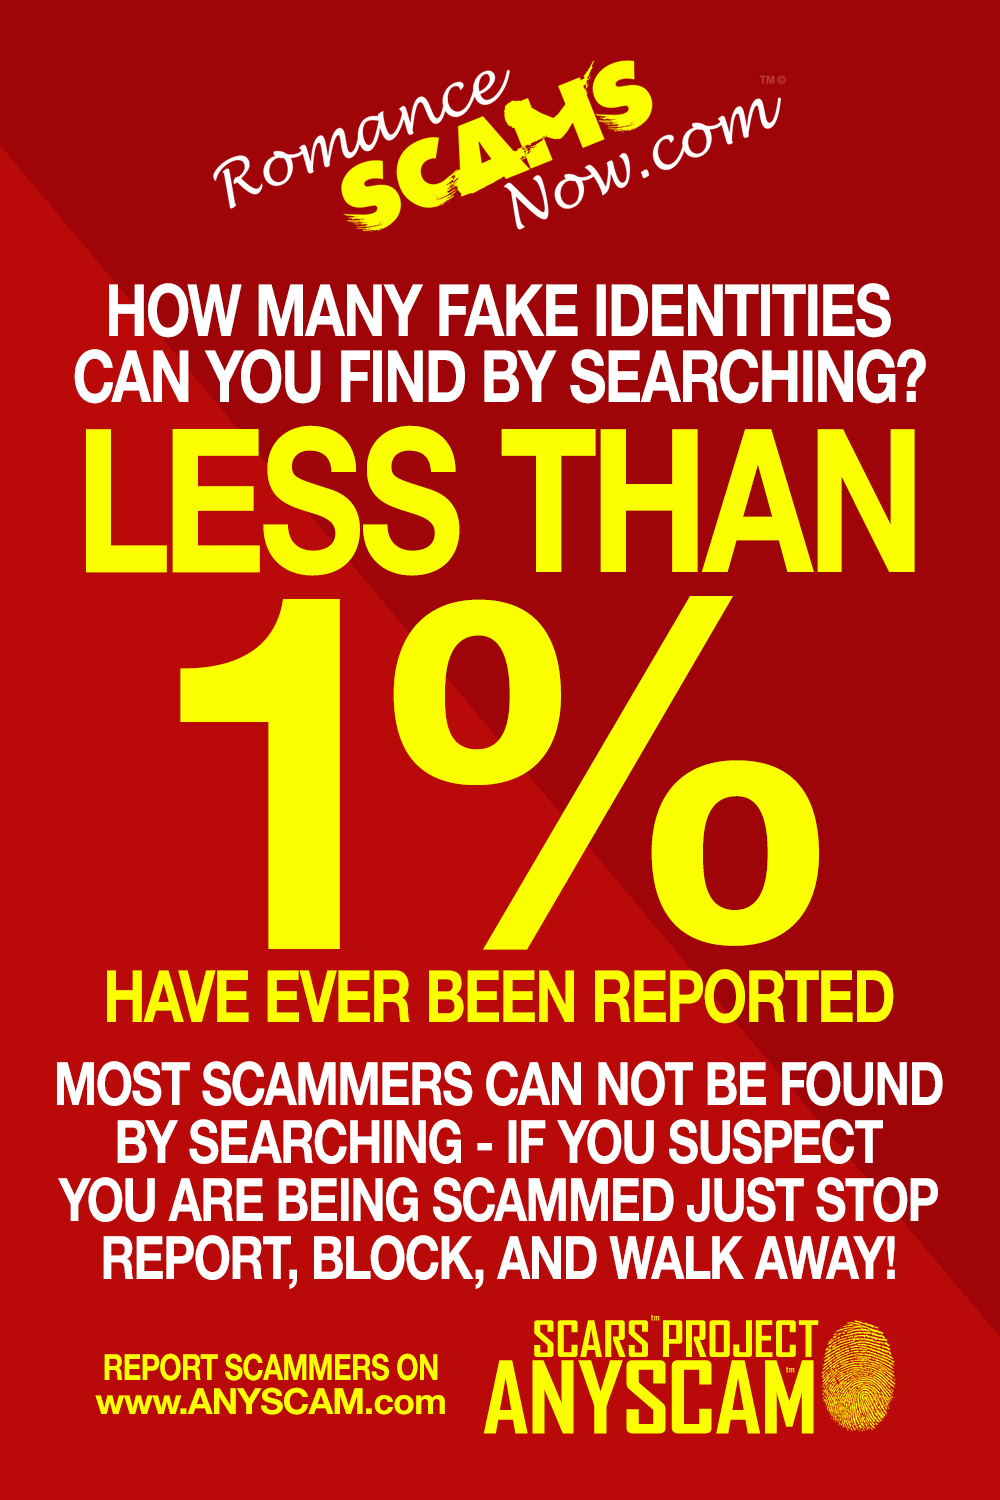 SCARS ™ / RSN™ Anti-Scam Poster: Less Than 1% 10